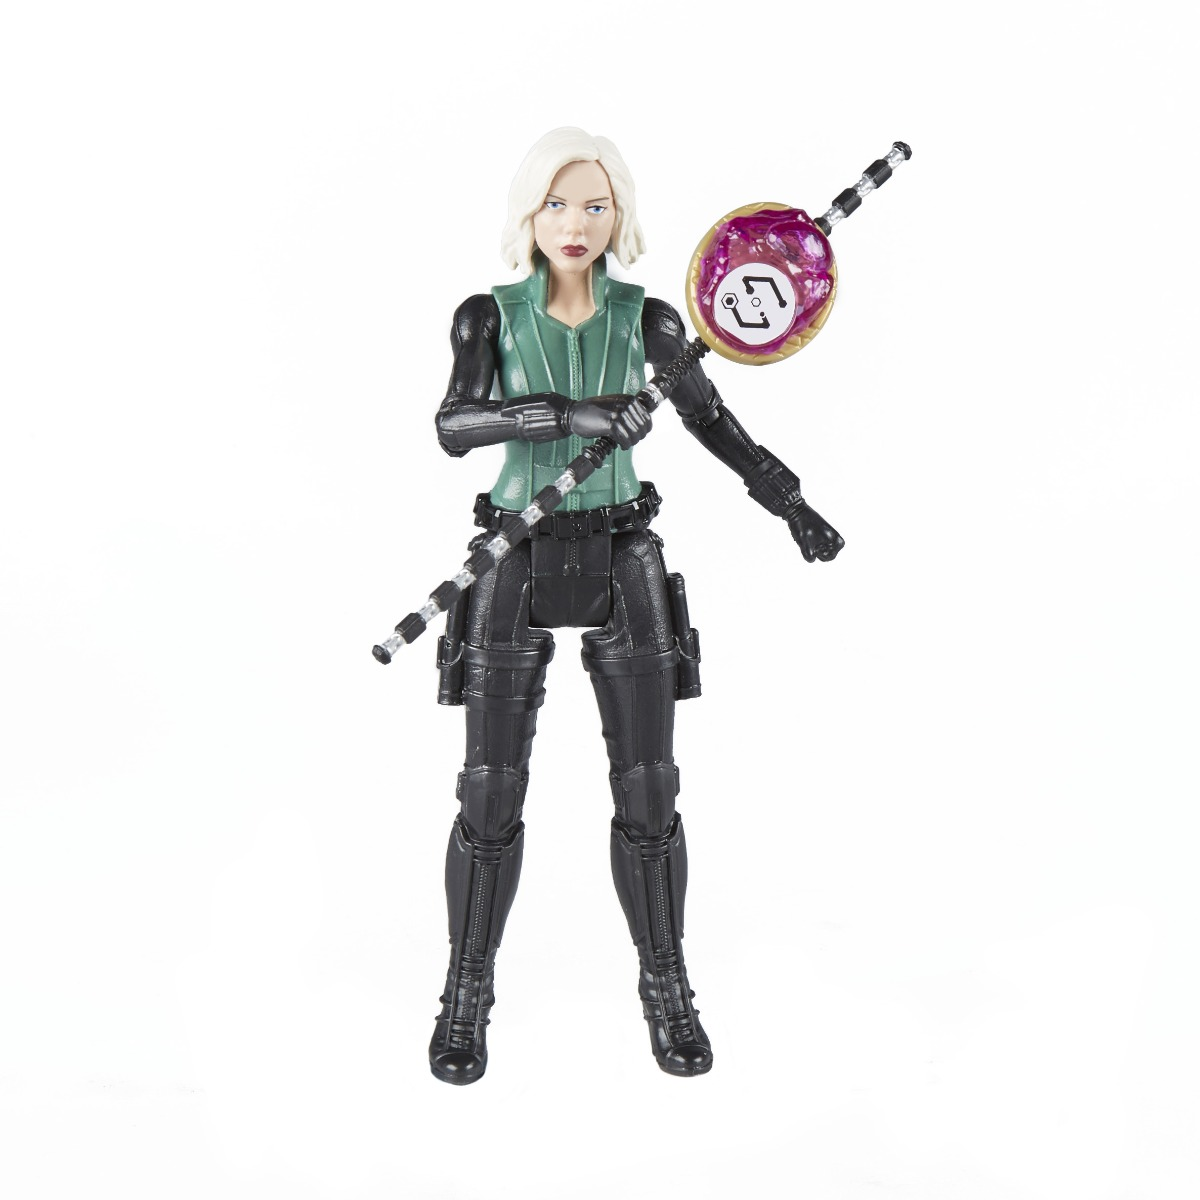 Figurina Avengers Infinity War, Black Widow, 15 cm